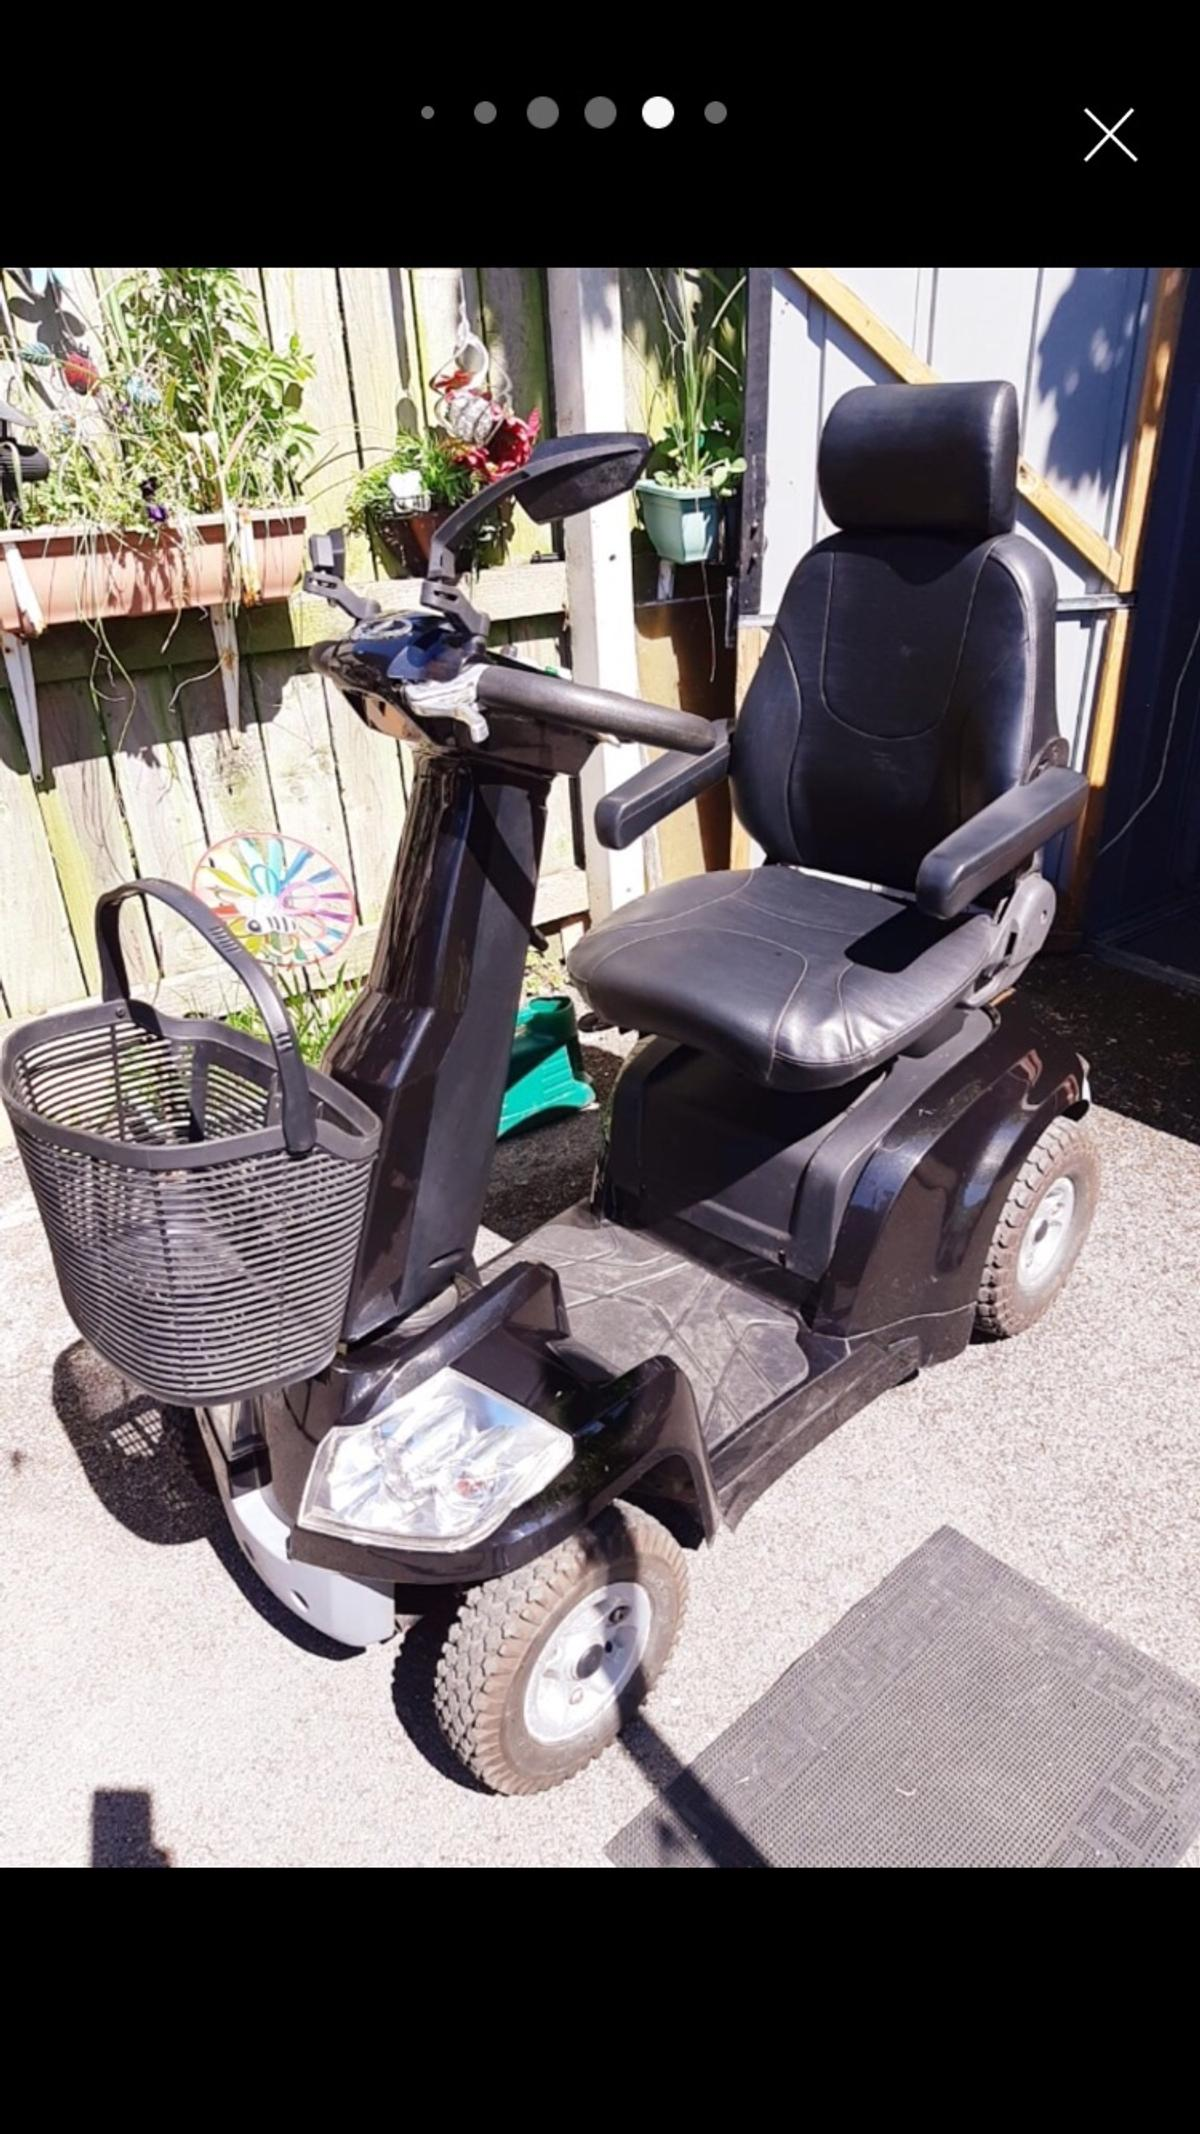 Landlex gazelle mobility scooter parts in S70 Barnsley for